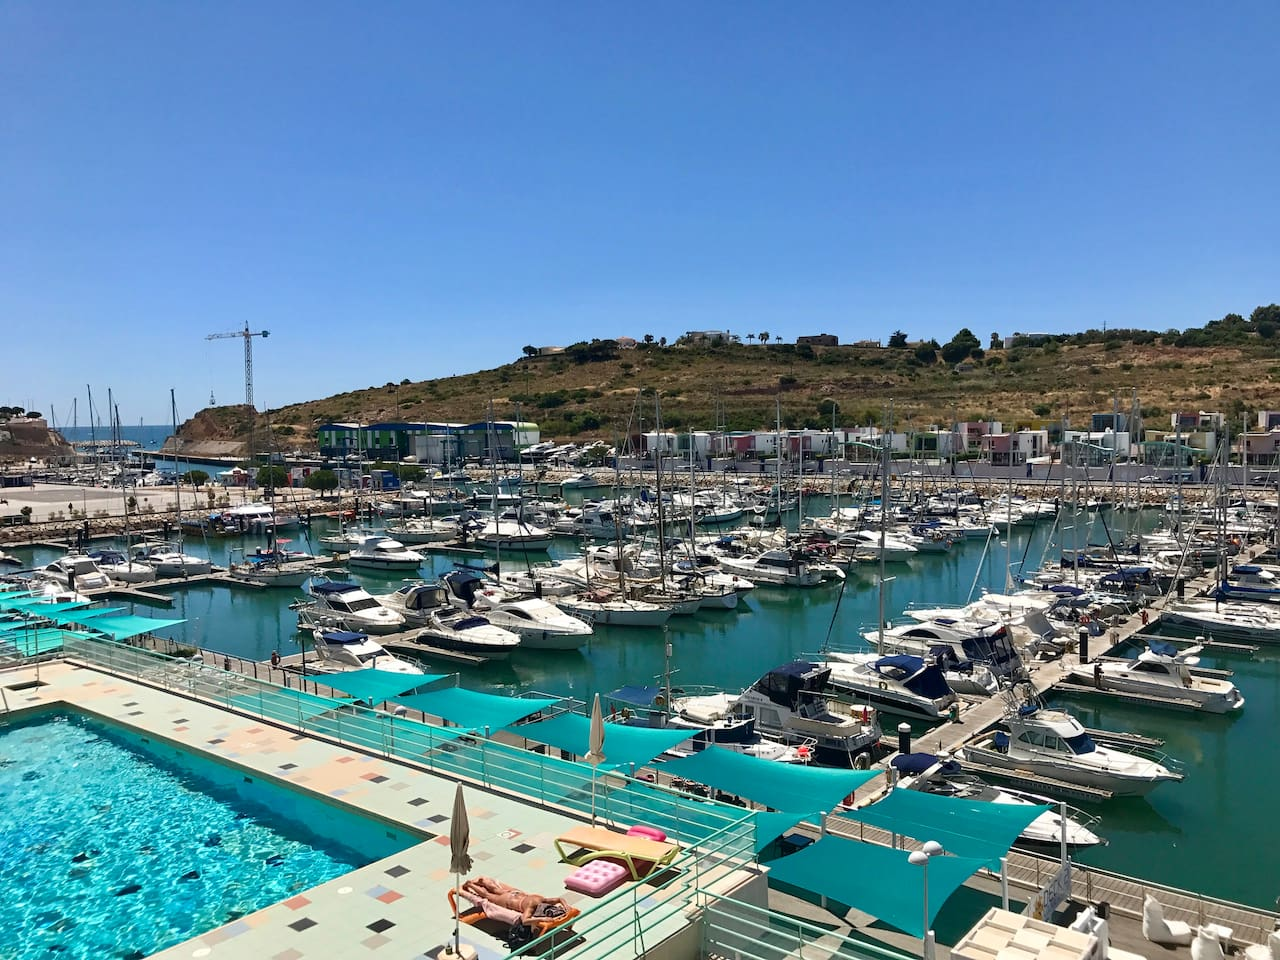 View from main balcony, overlooking pool, marina, marina restaurants and ocean in the background.